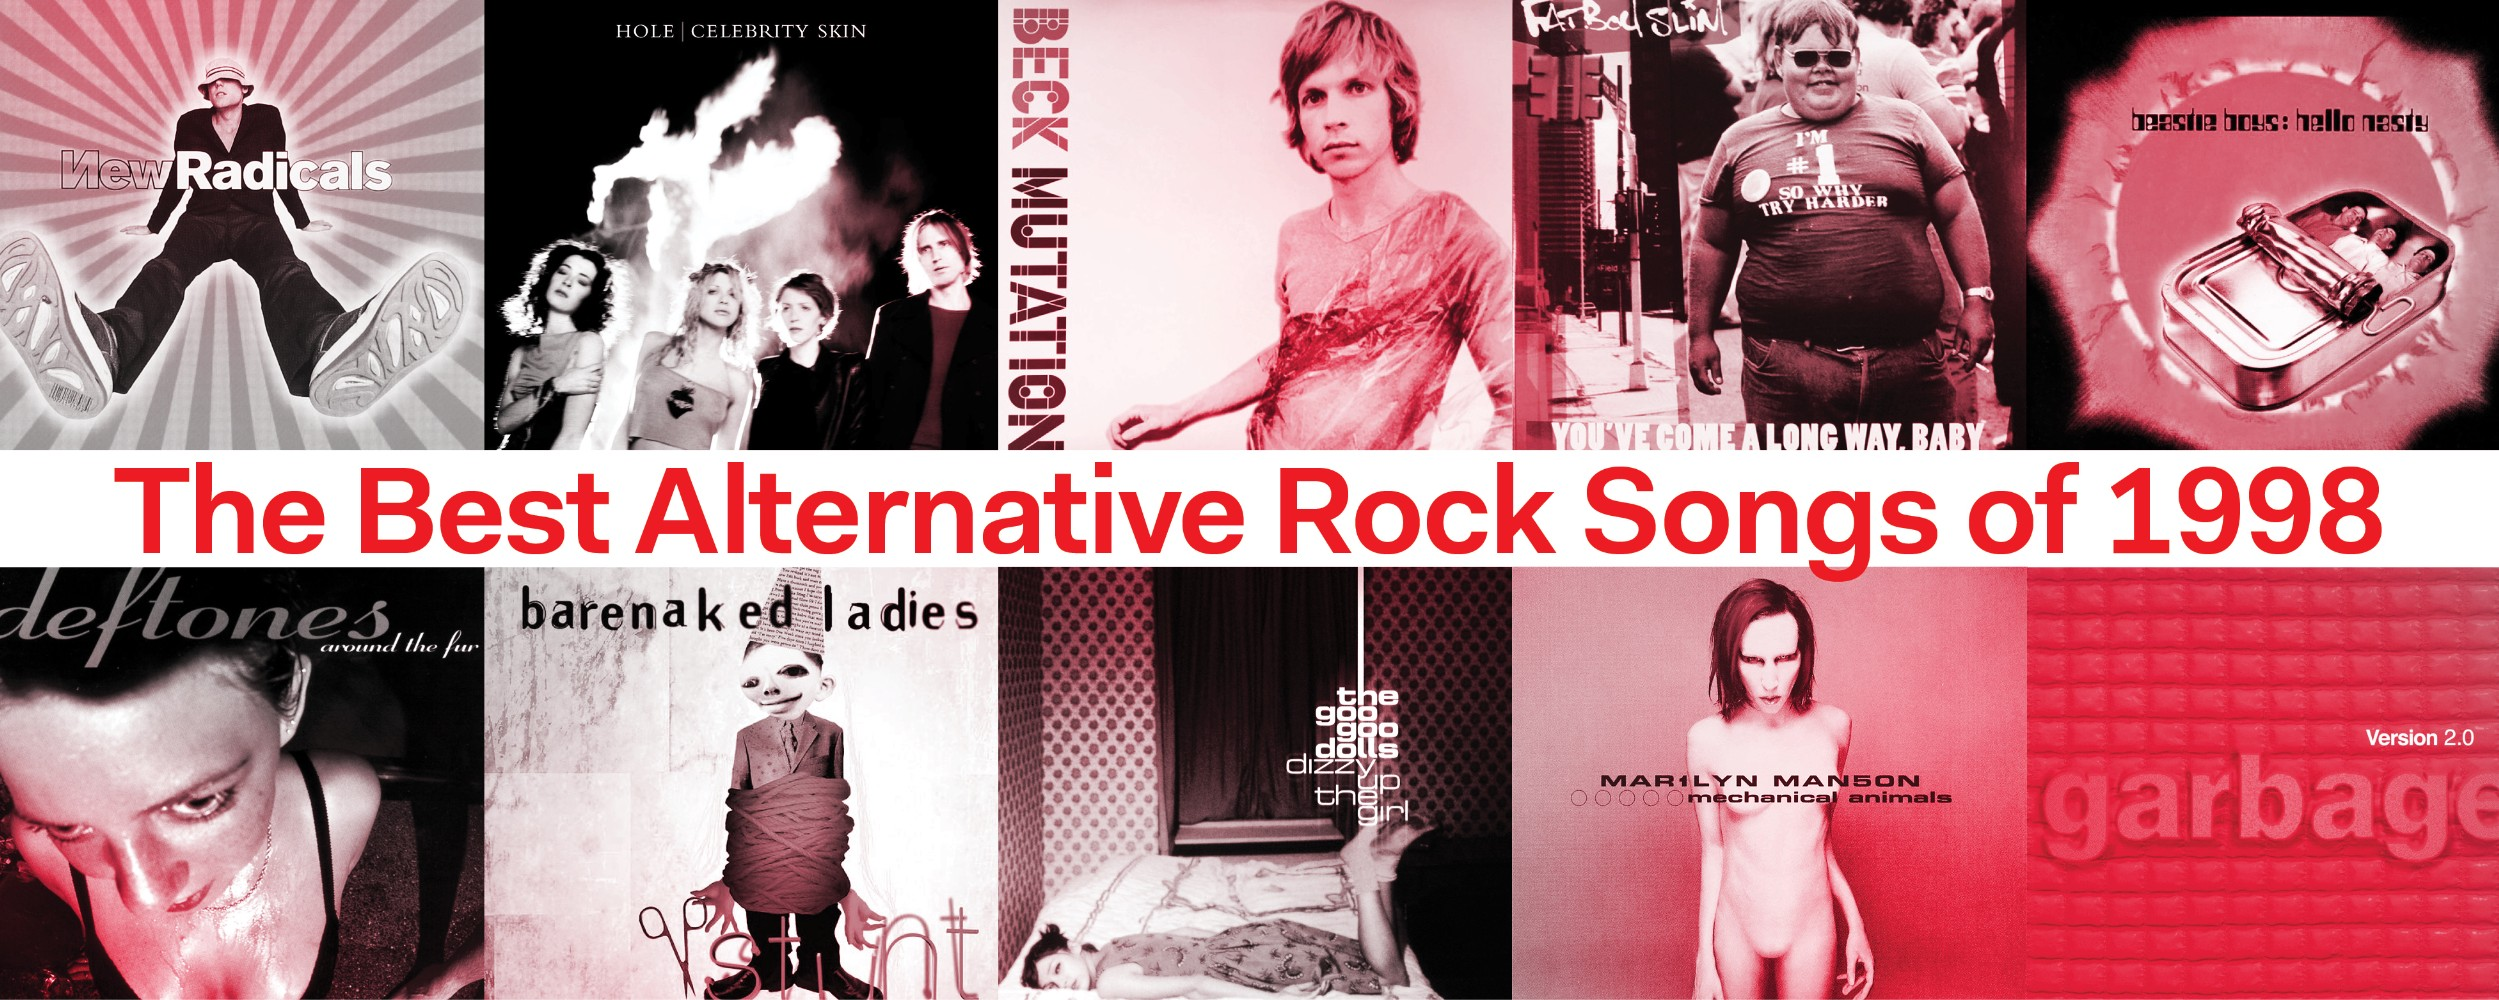 Bad Modern Rock Bands 88 Best Alternative Rock Songs Of 1998 Spin